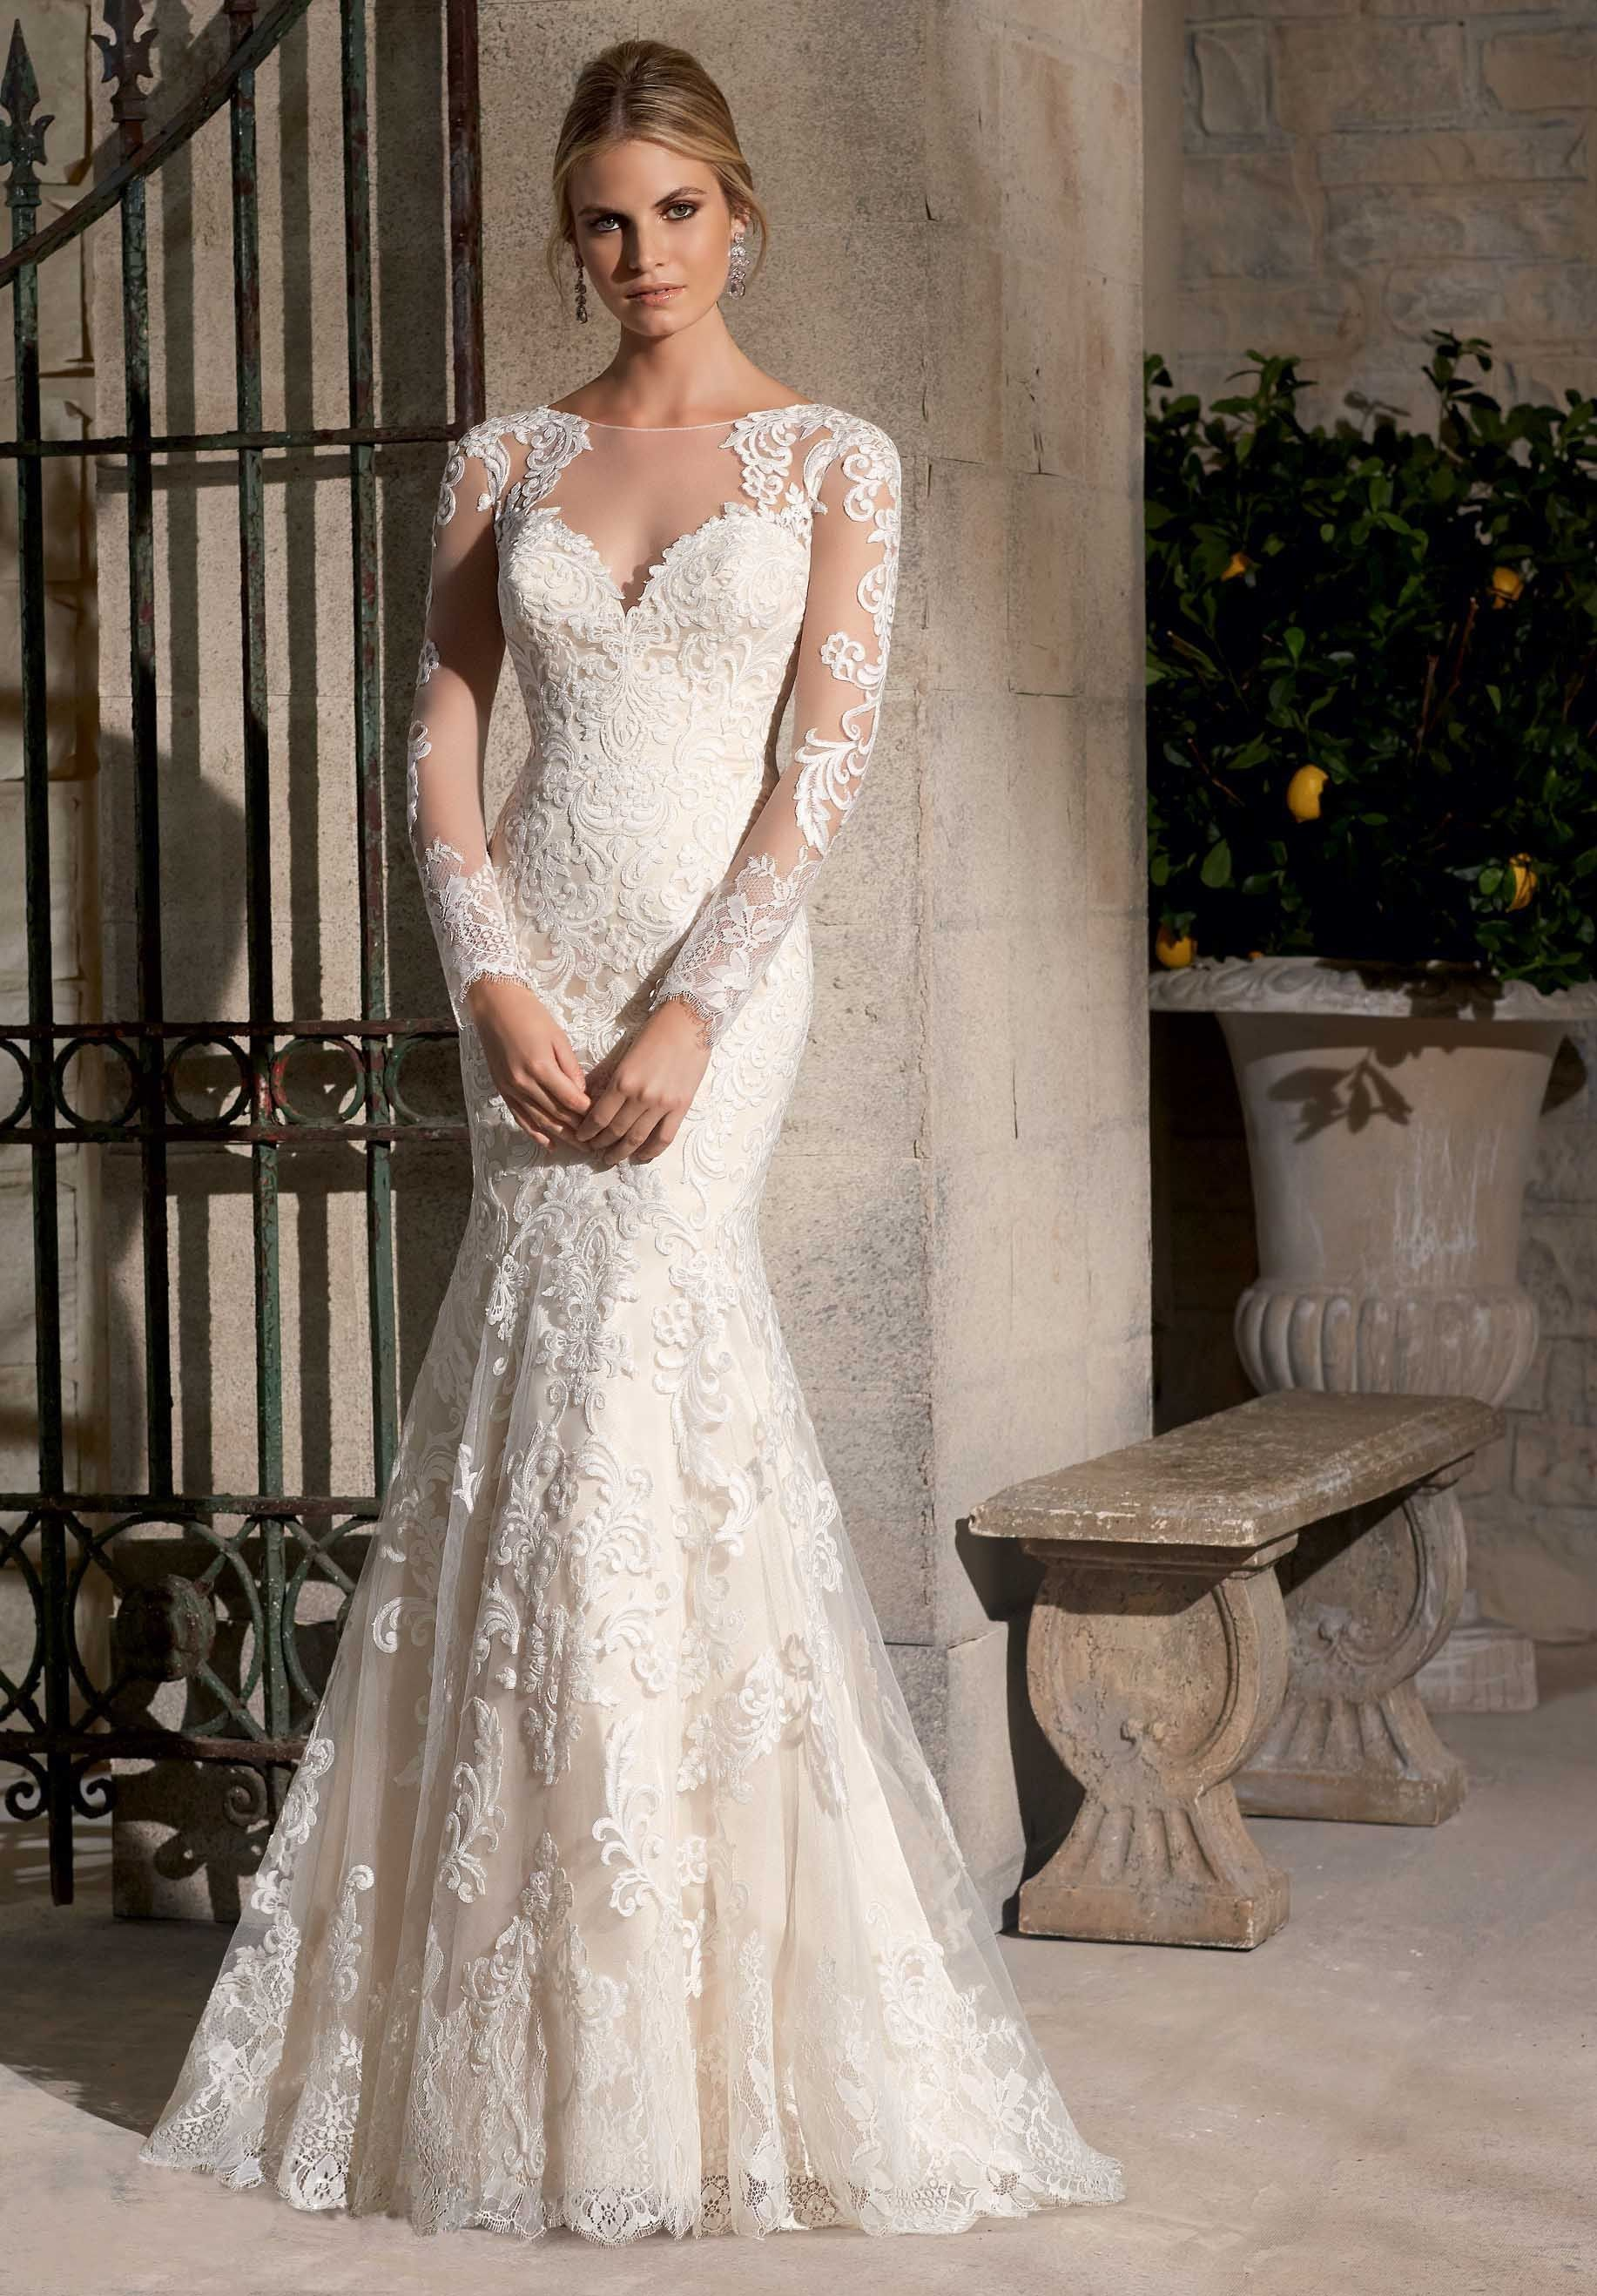 Illusion neckline long sleeve backless wedding gown google